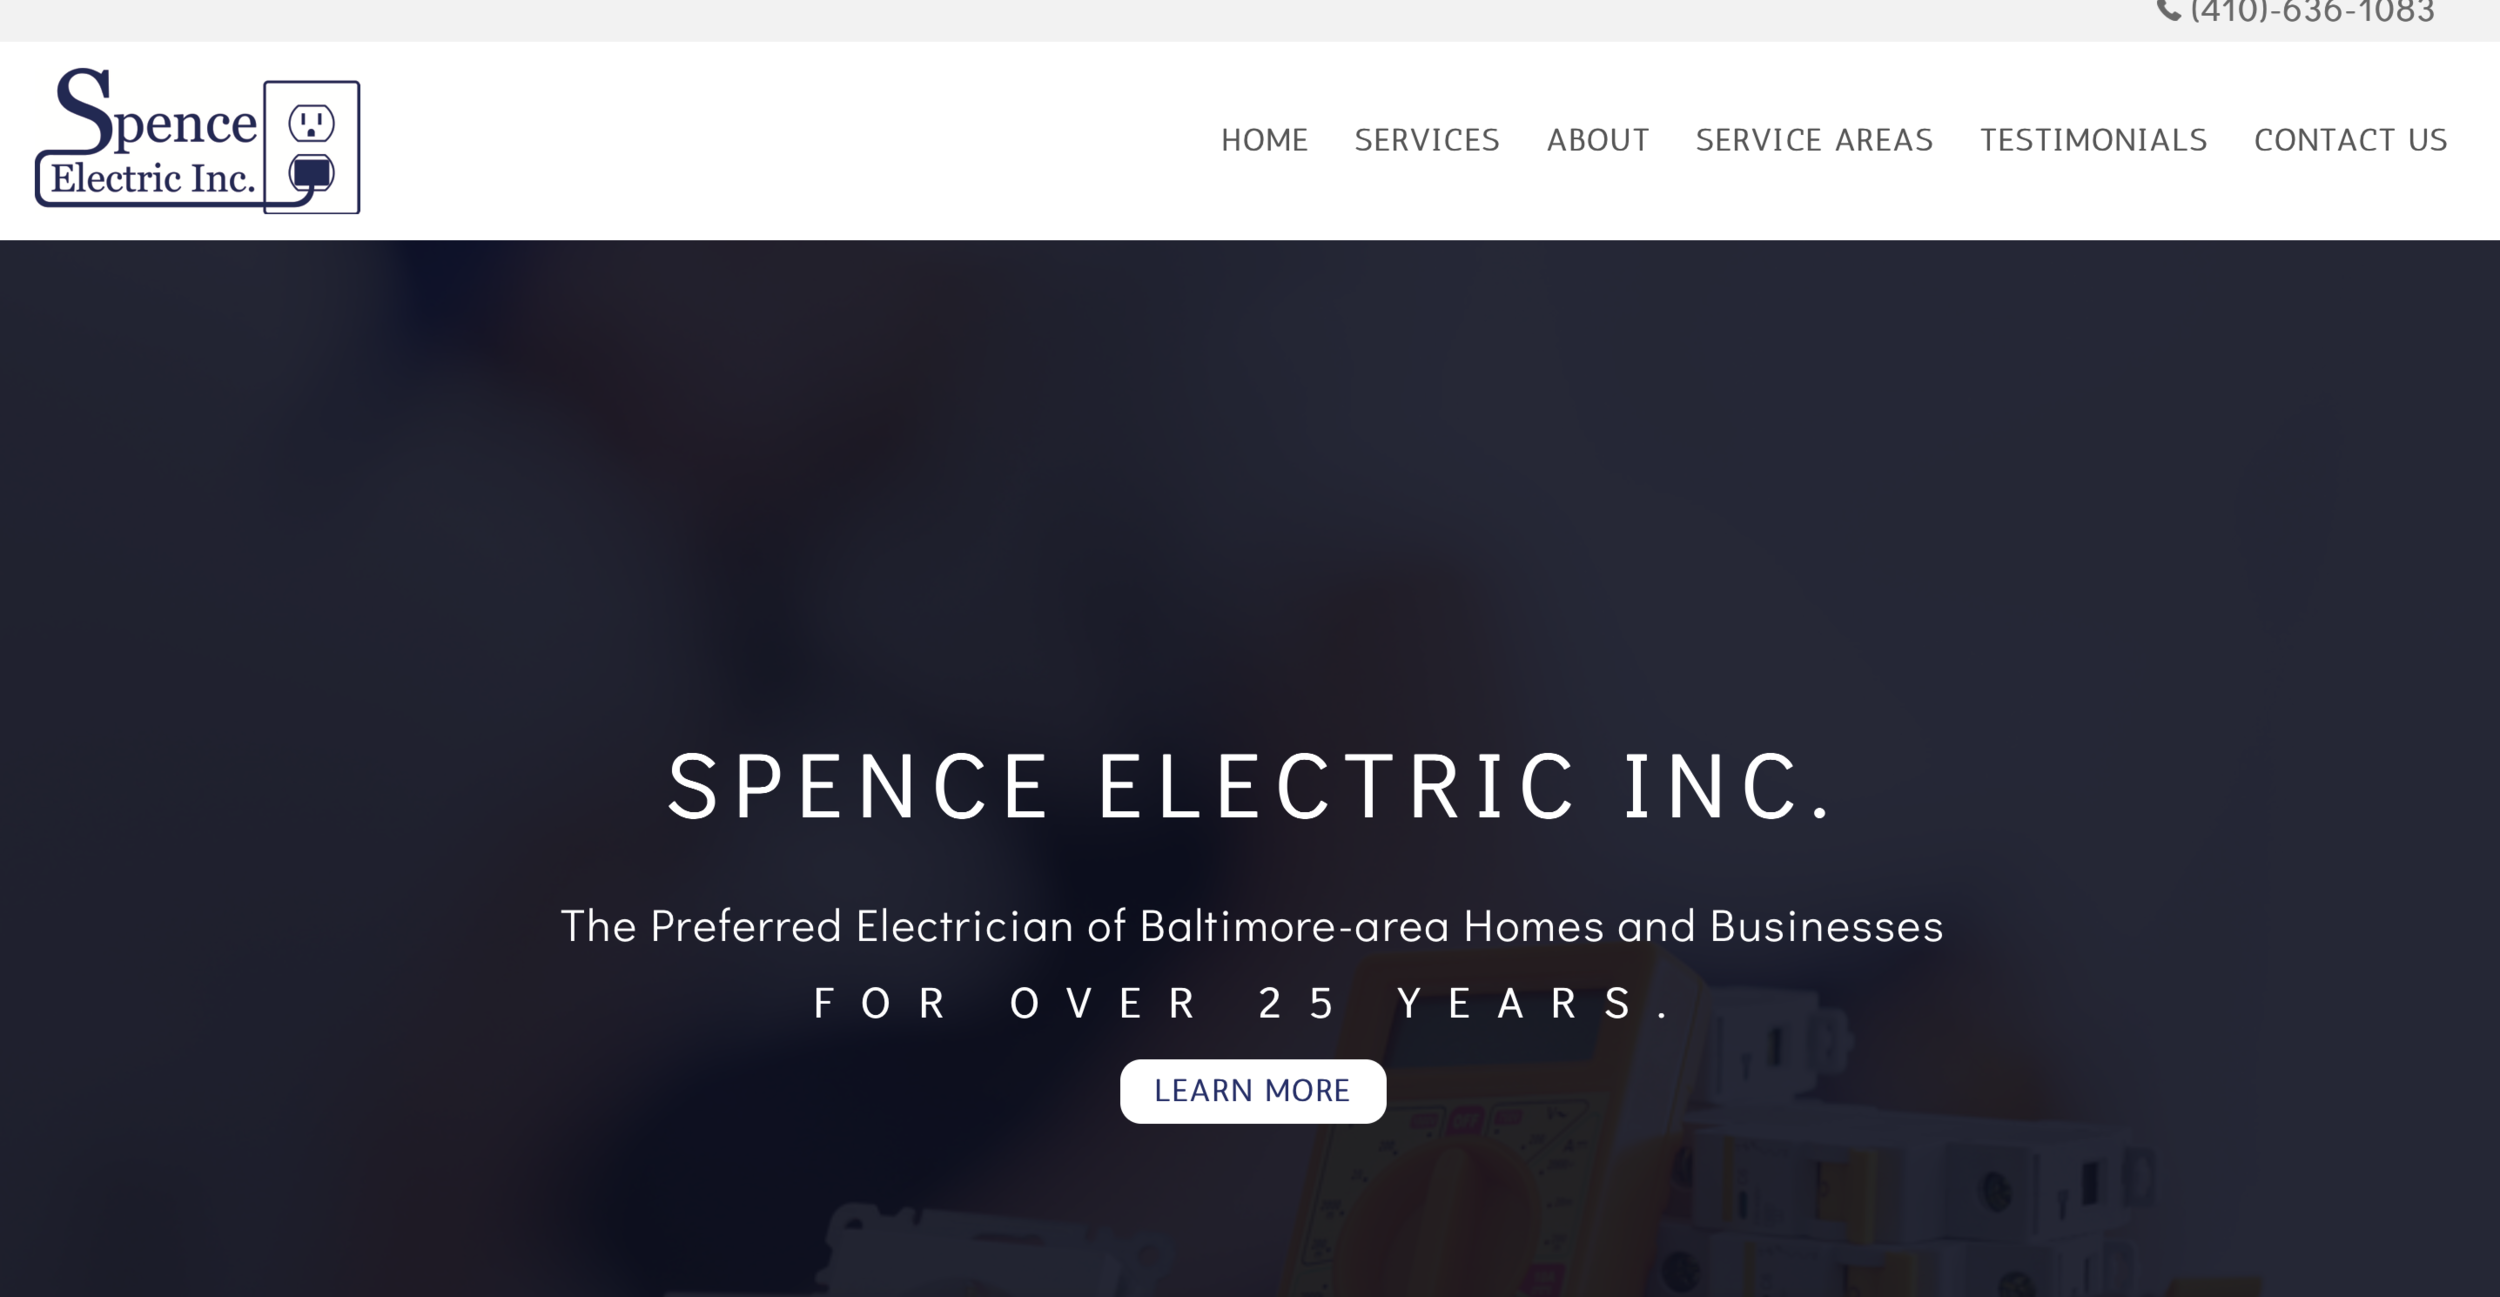 SPENCE ELECTRIC INC.